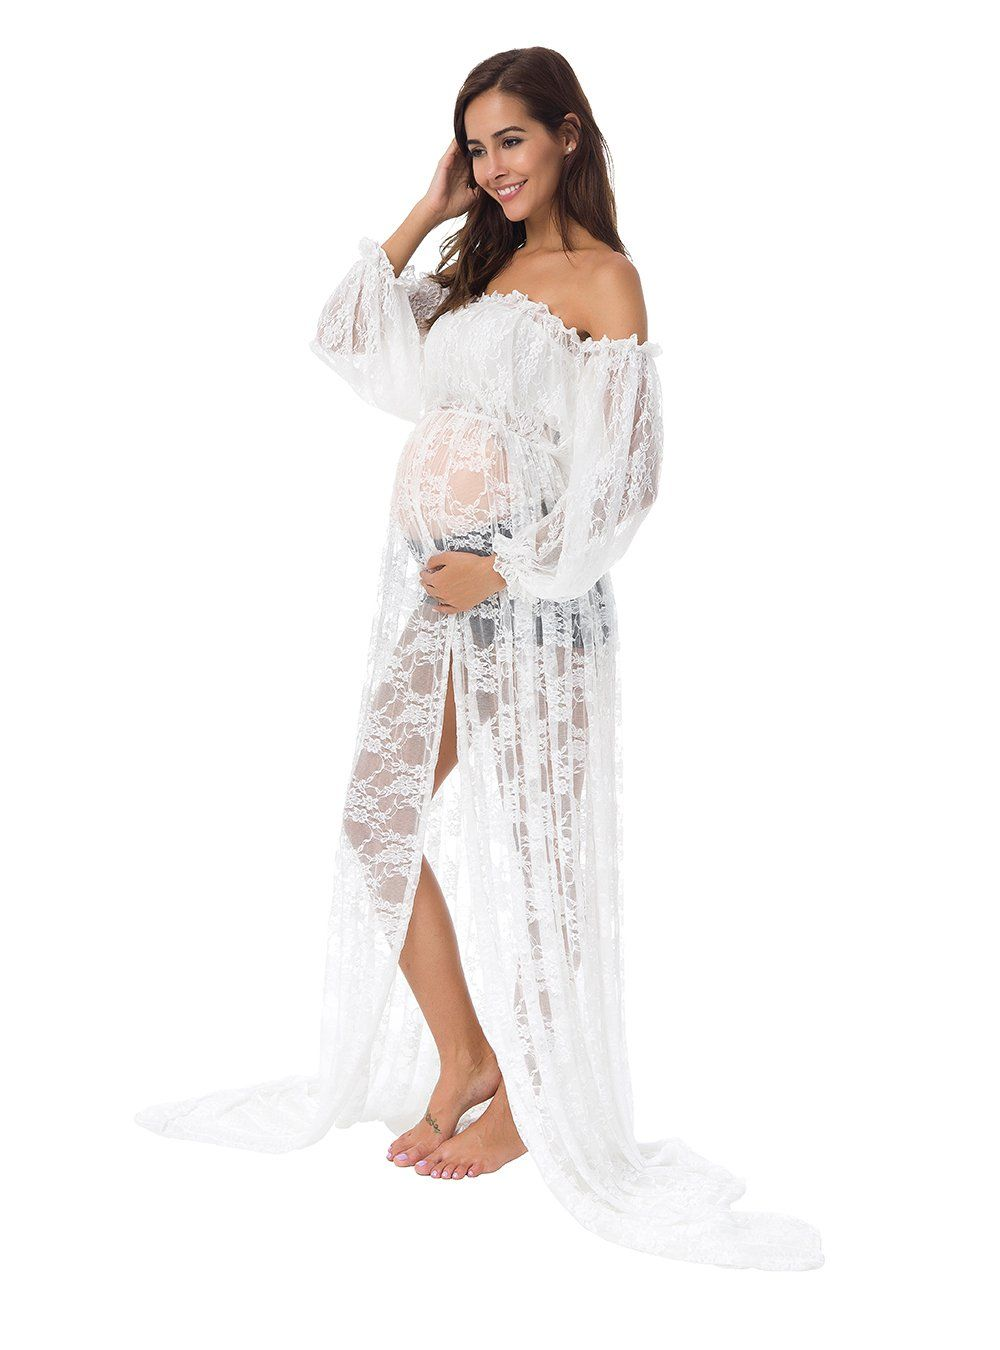 250f97d30c8c6 Maternity Fashion - skin-tight maternity dresses : JustVH Womens Off  Shoulder Long Sleeve Split Front Lace Maternity Gown Maxi Photography Dress  ** Click ...